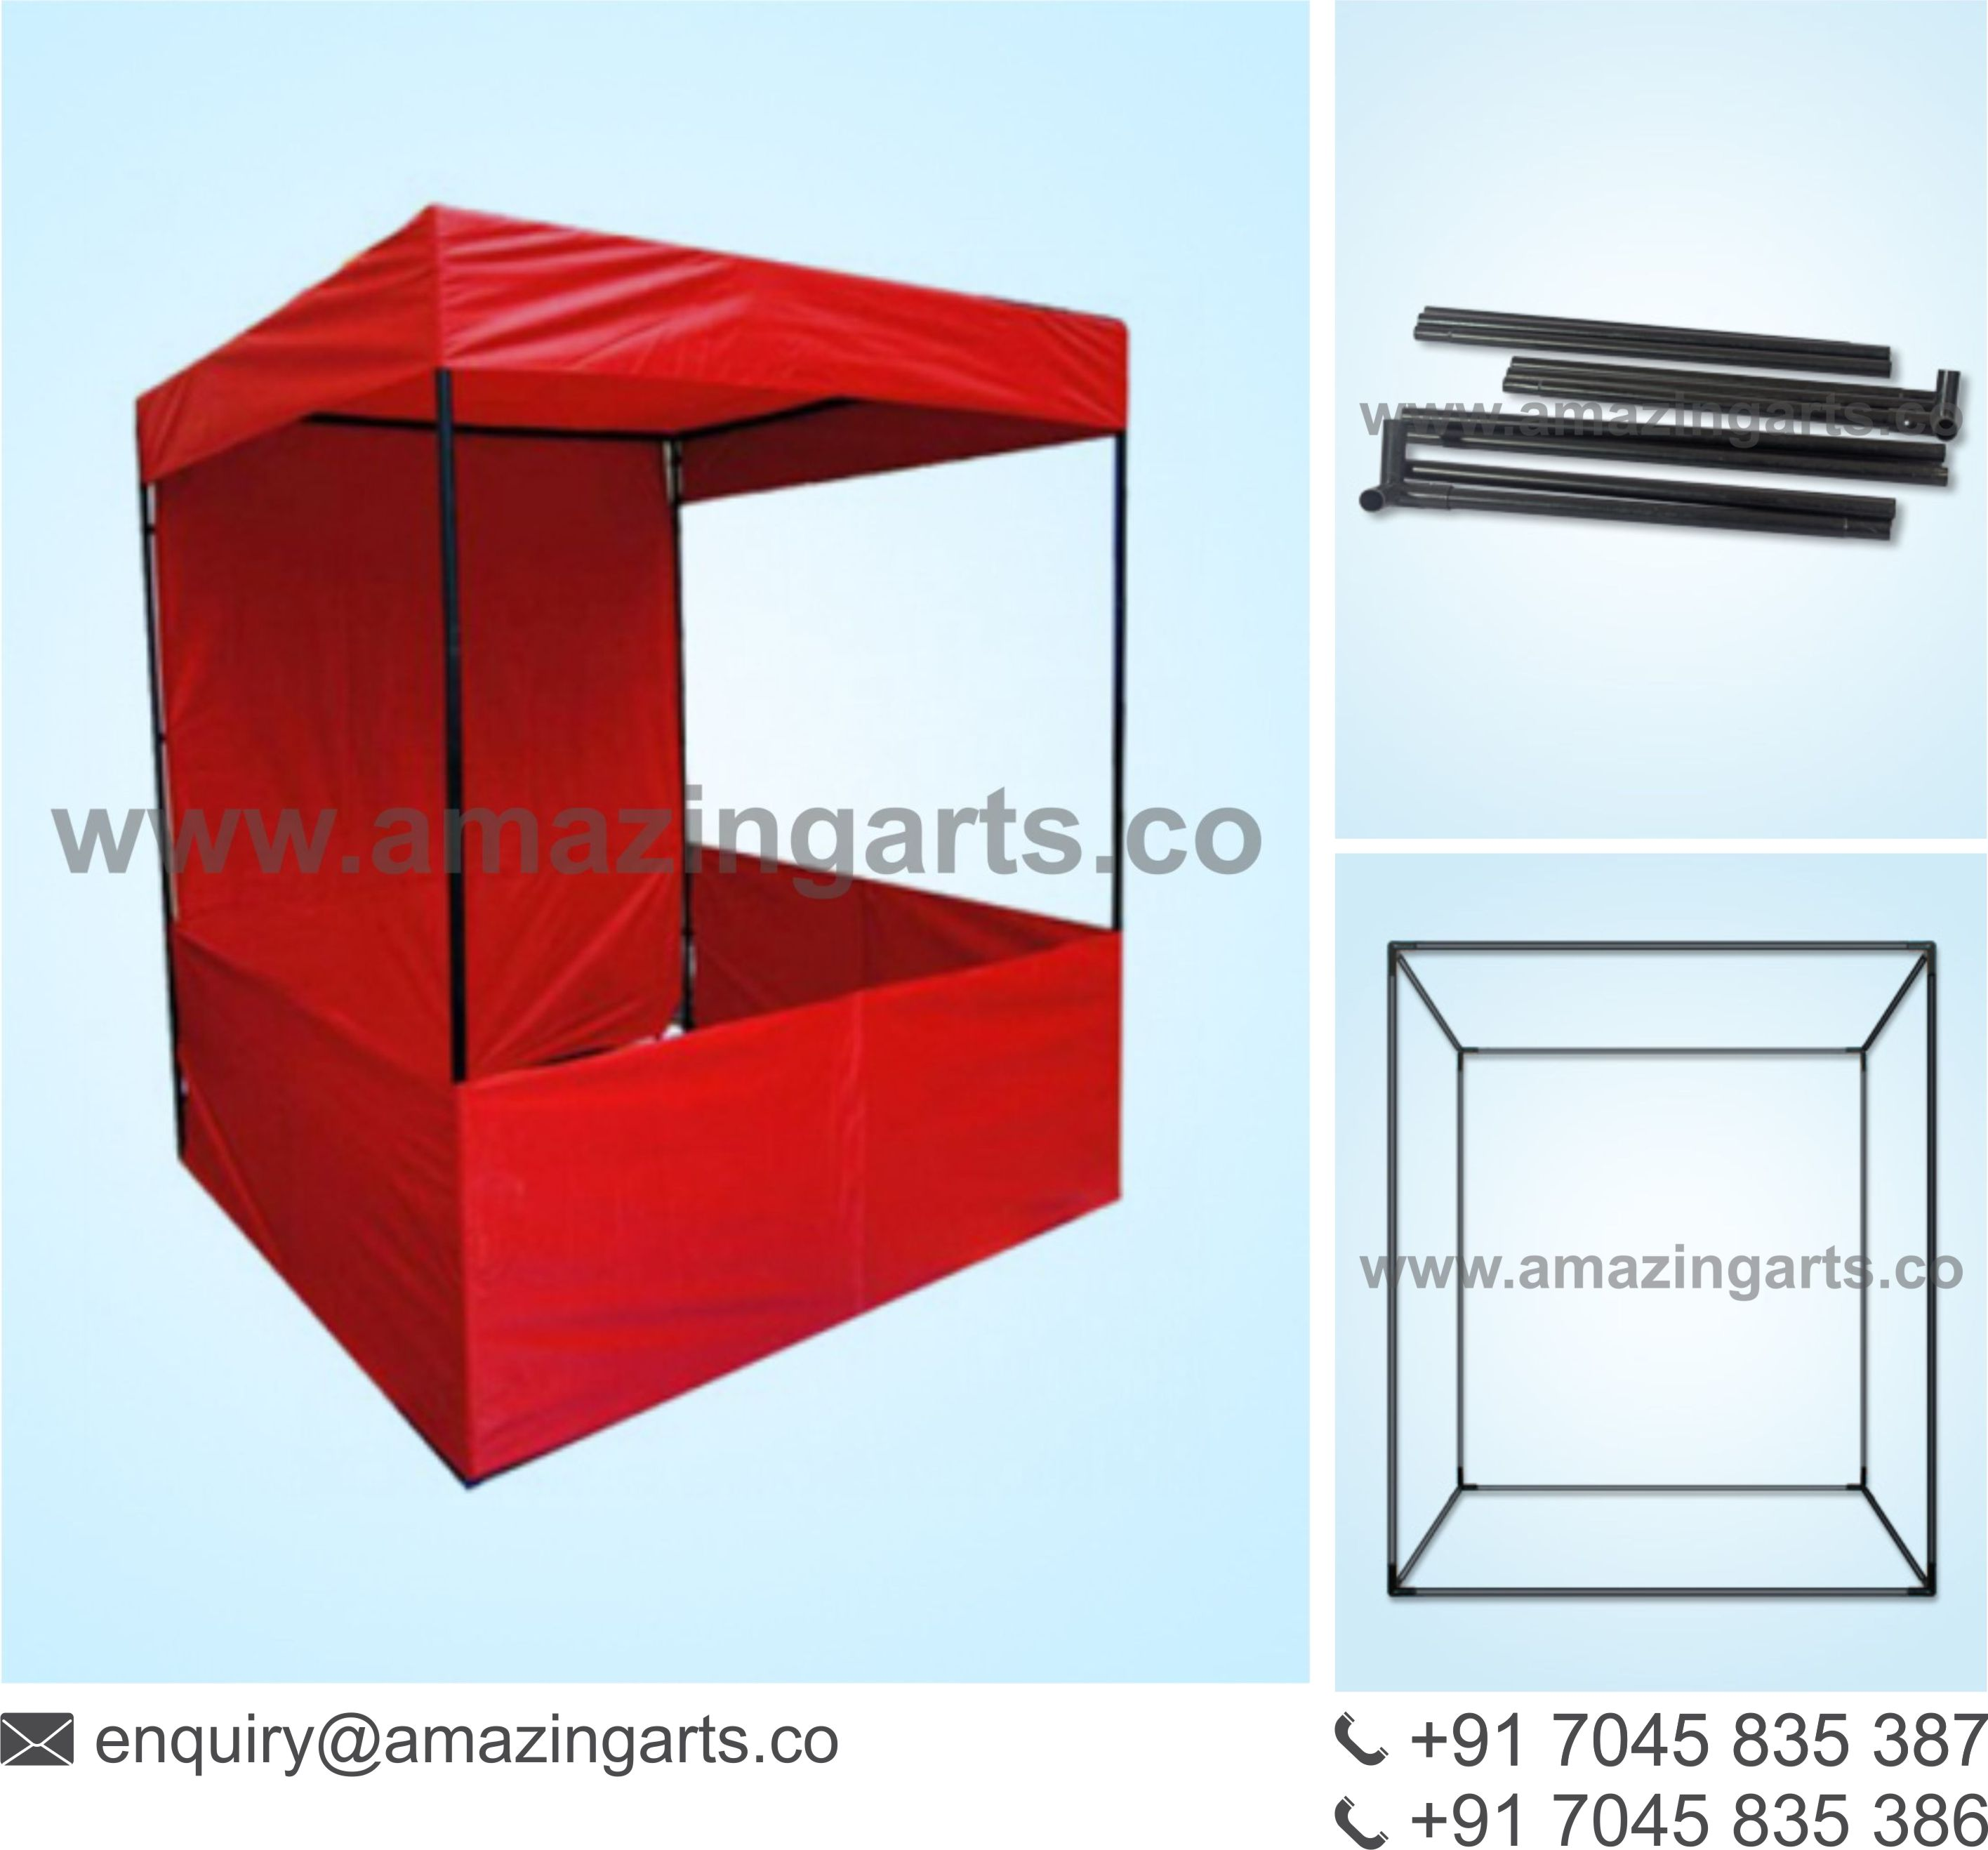 Portable Exhibition Kit Bangalore : Portable exhibition kit portable exhibition stall portable